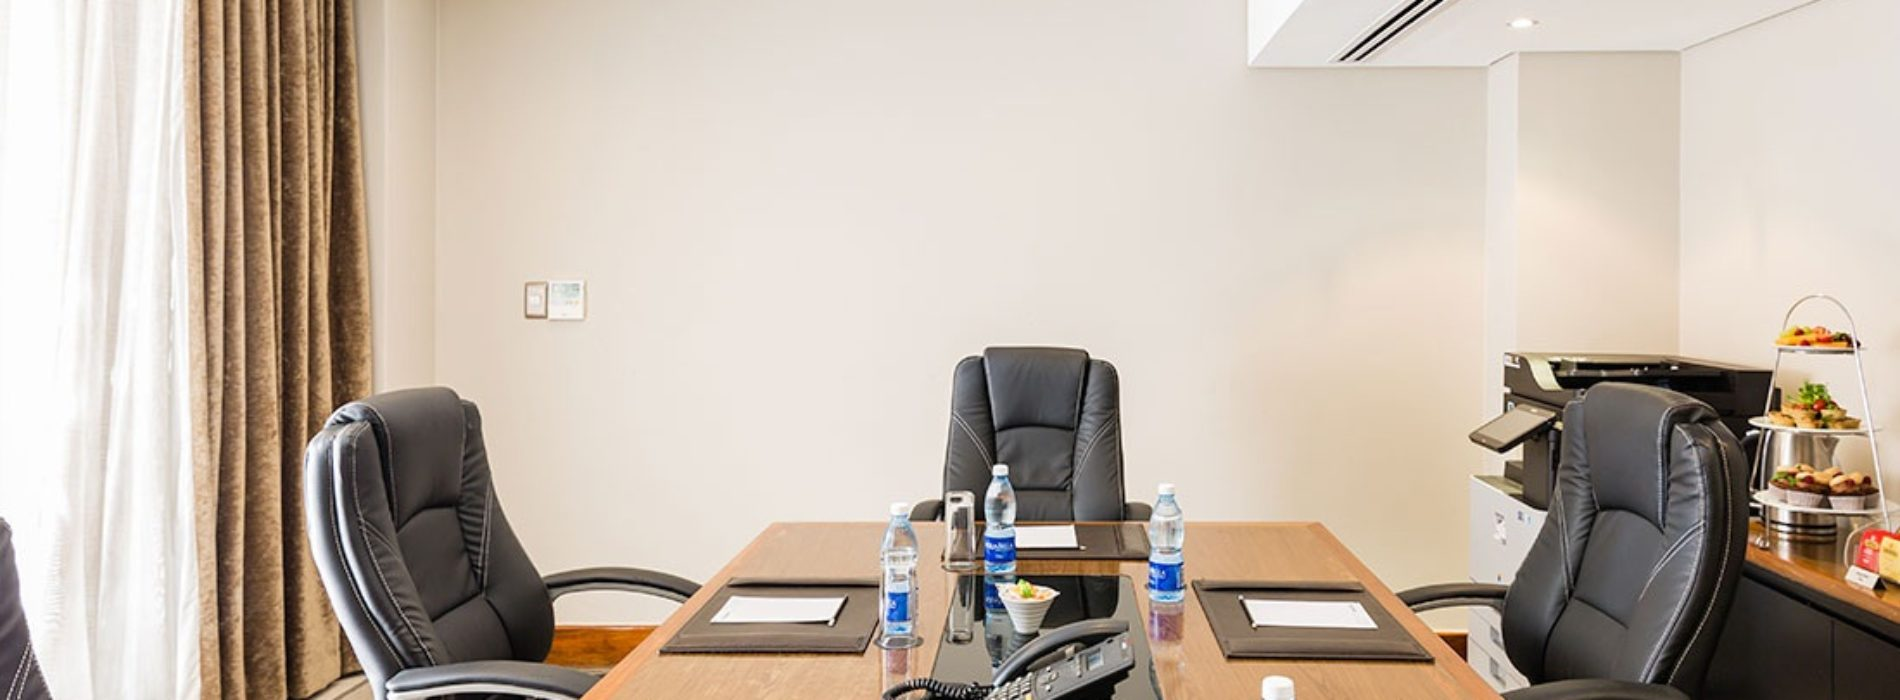 5 Benefits of Using Conference Rooms for Your Business Meetings